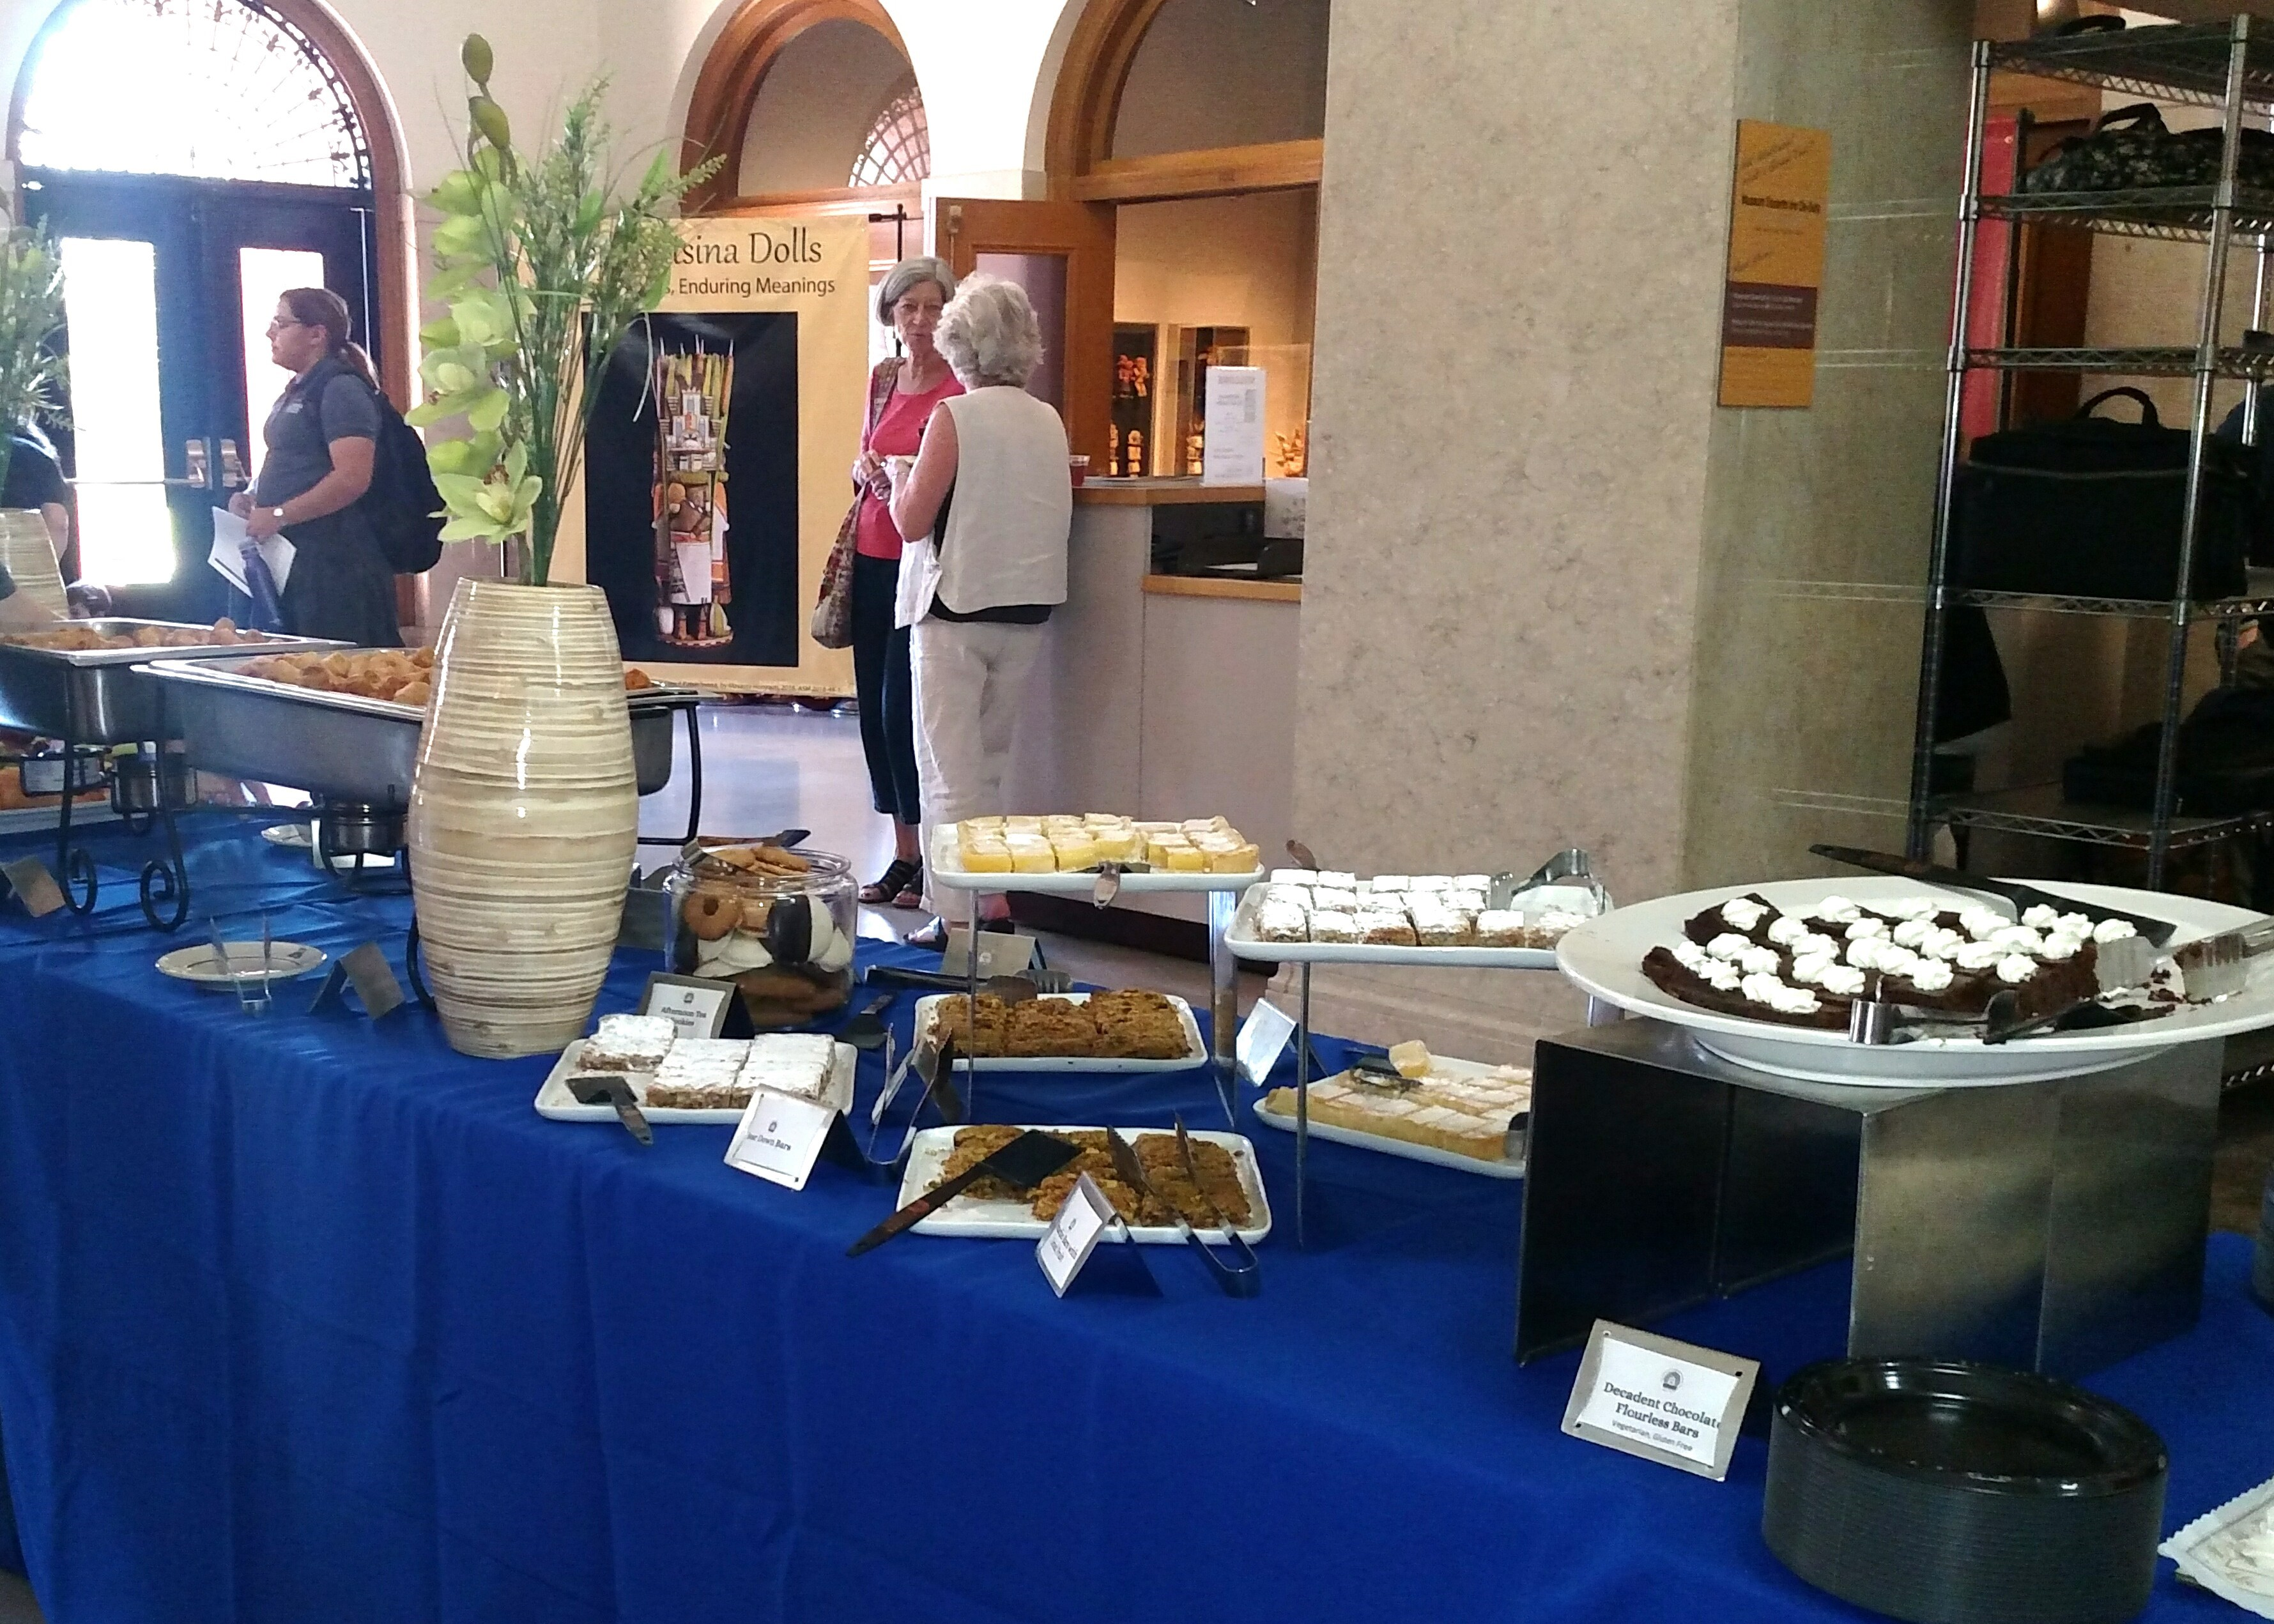 This image shows catered food displayed on a table with a blue tablecloth